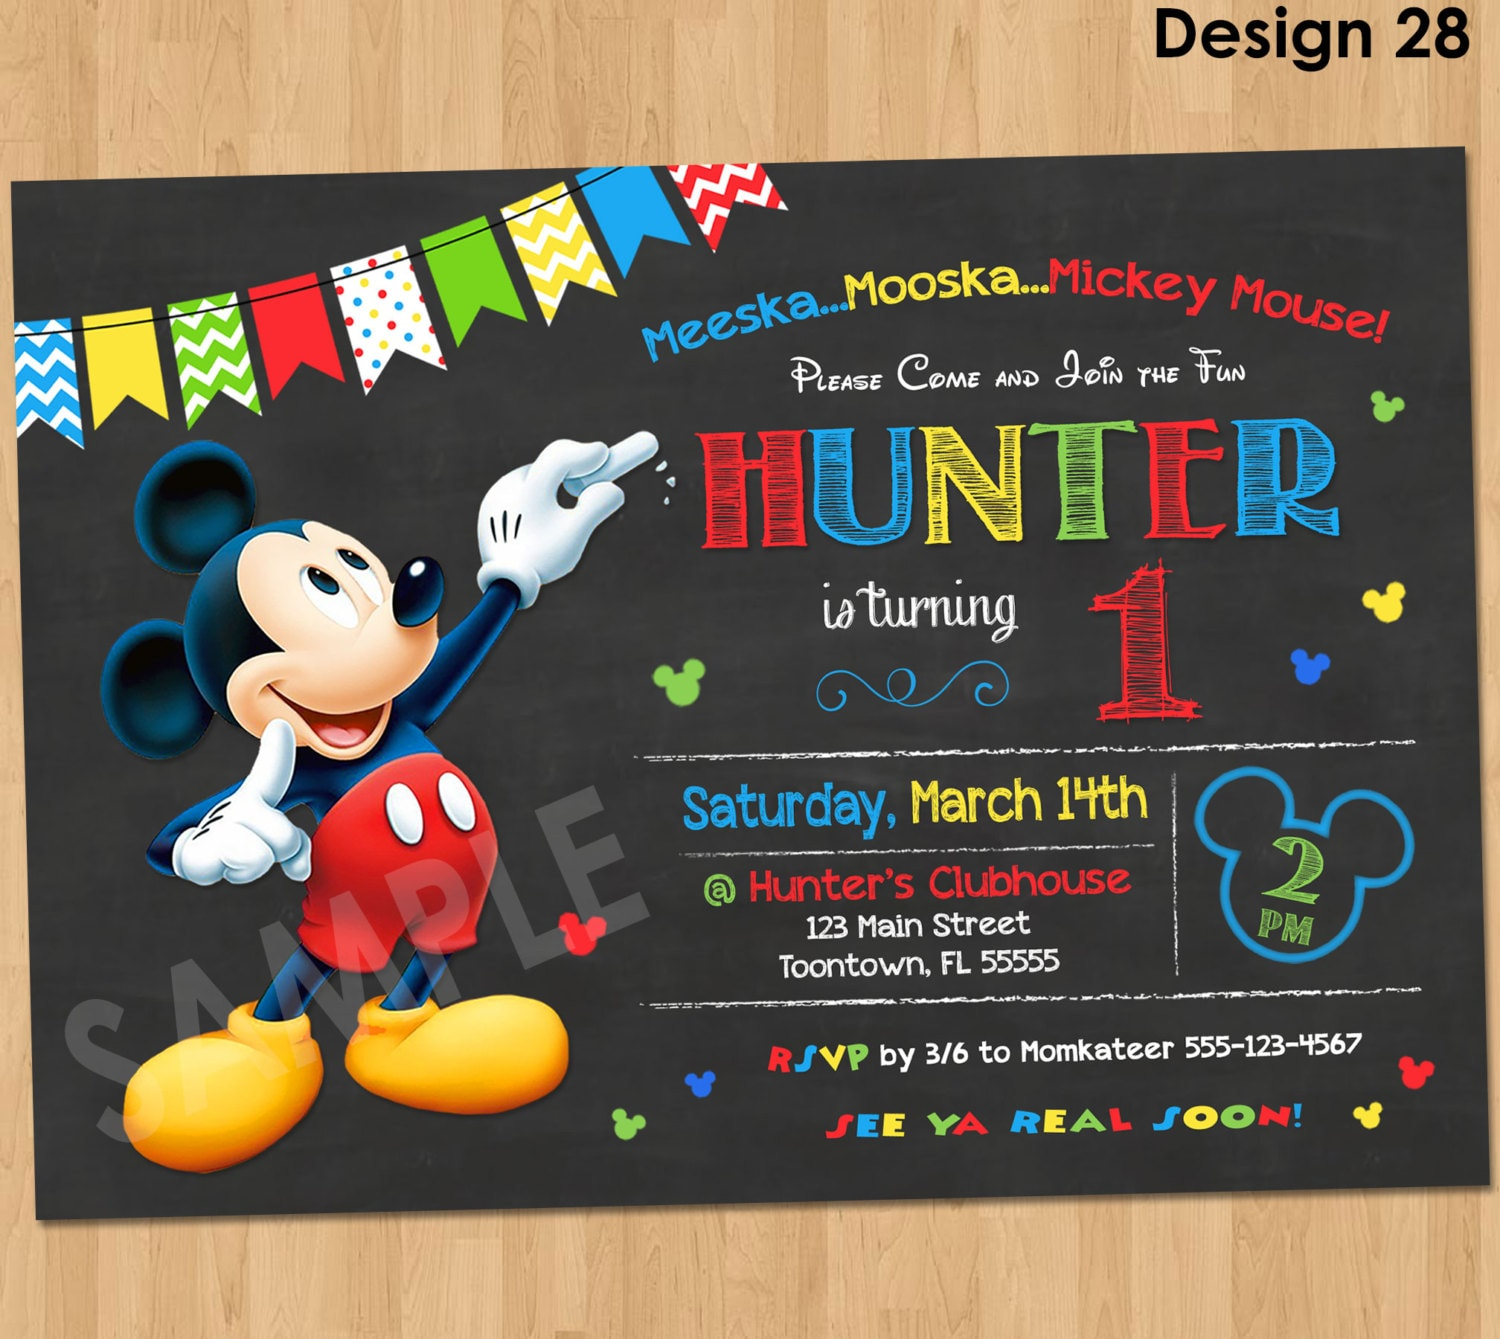 Mickey Mouse Clubhouse Invites was awesome invitation template